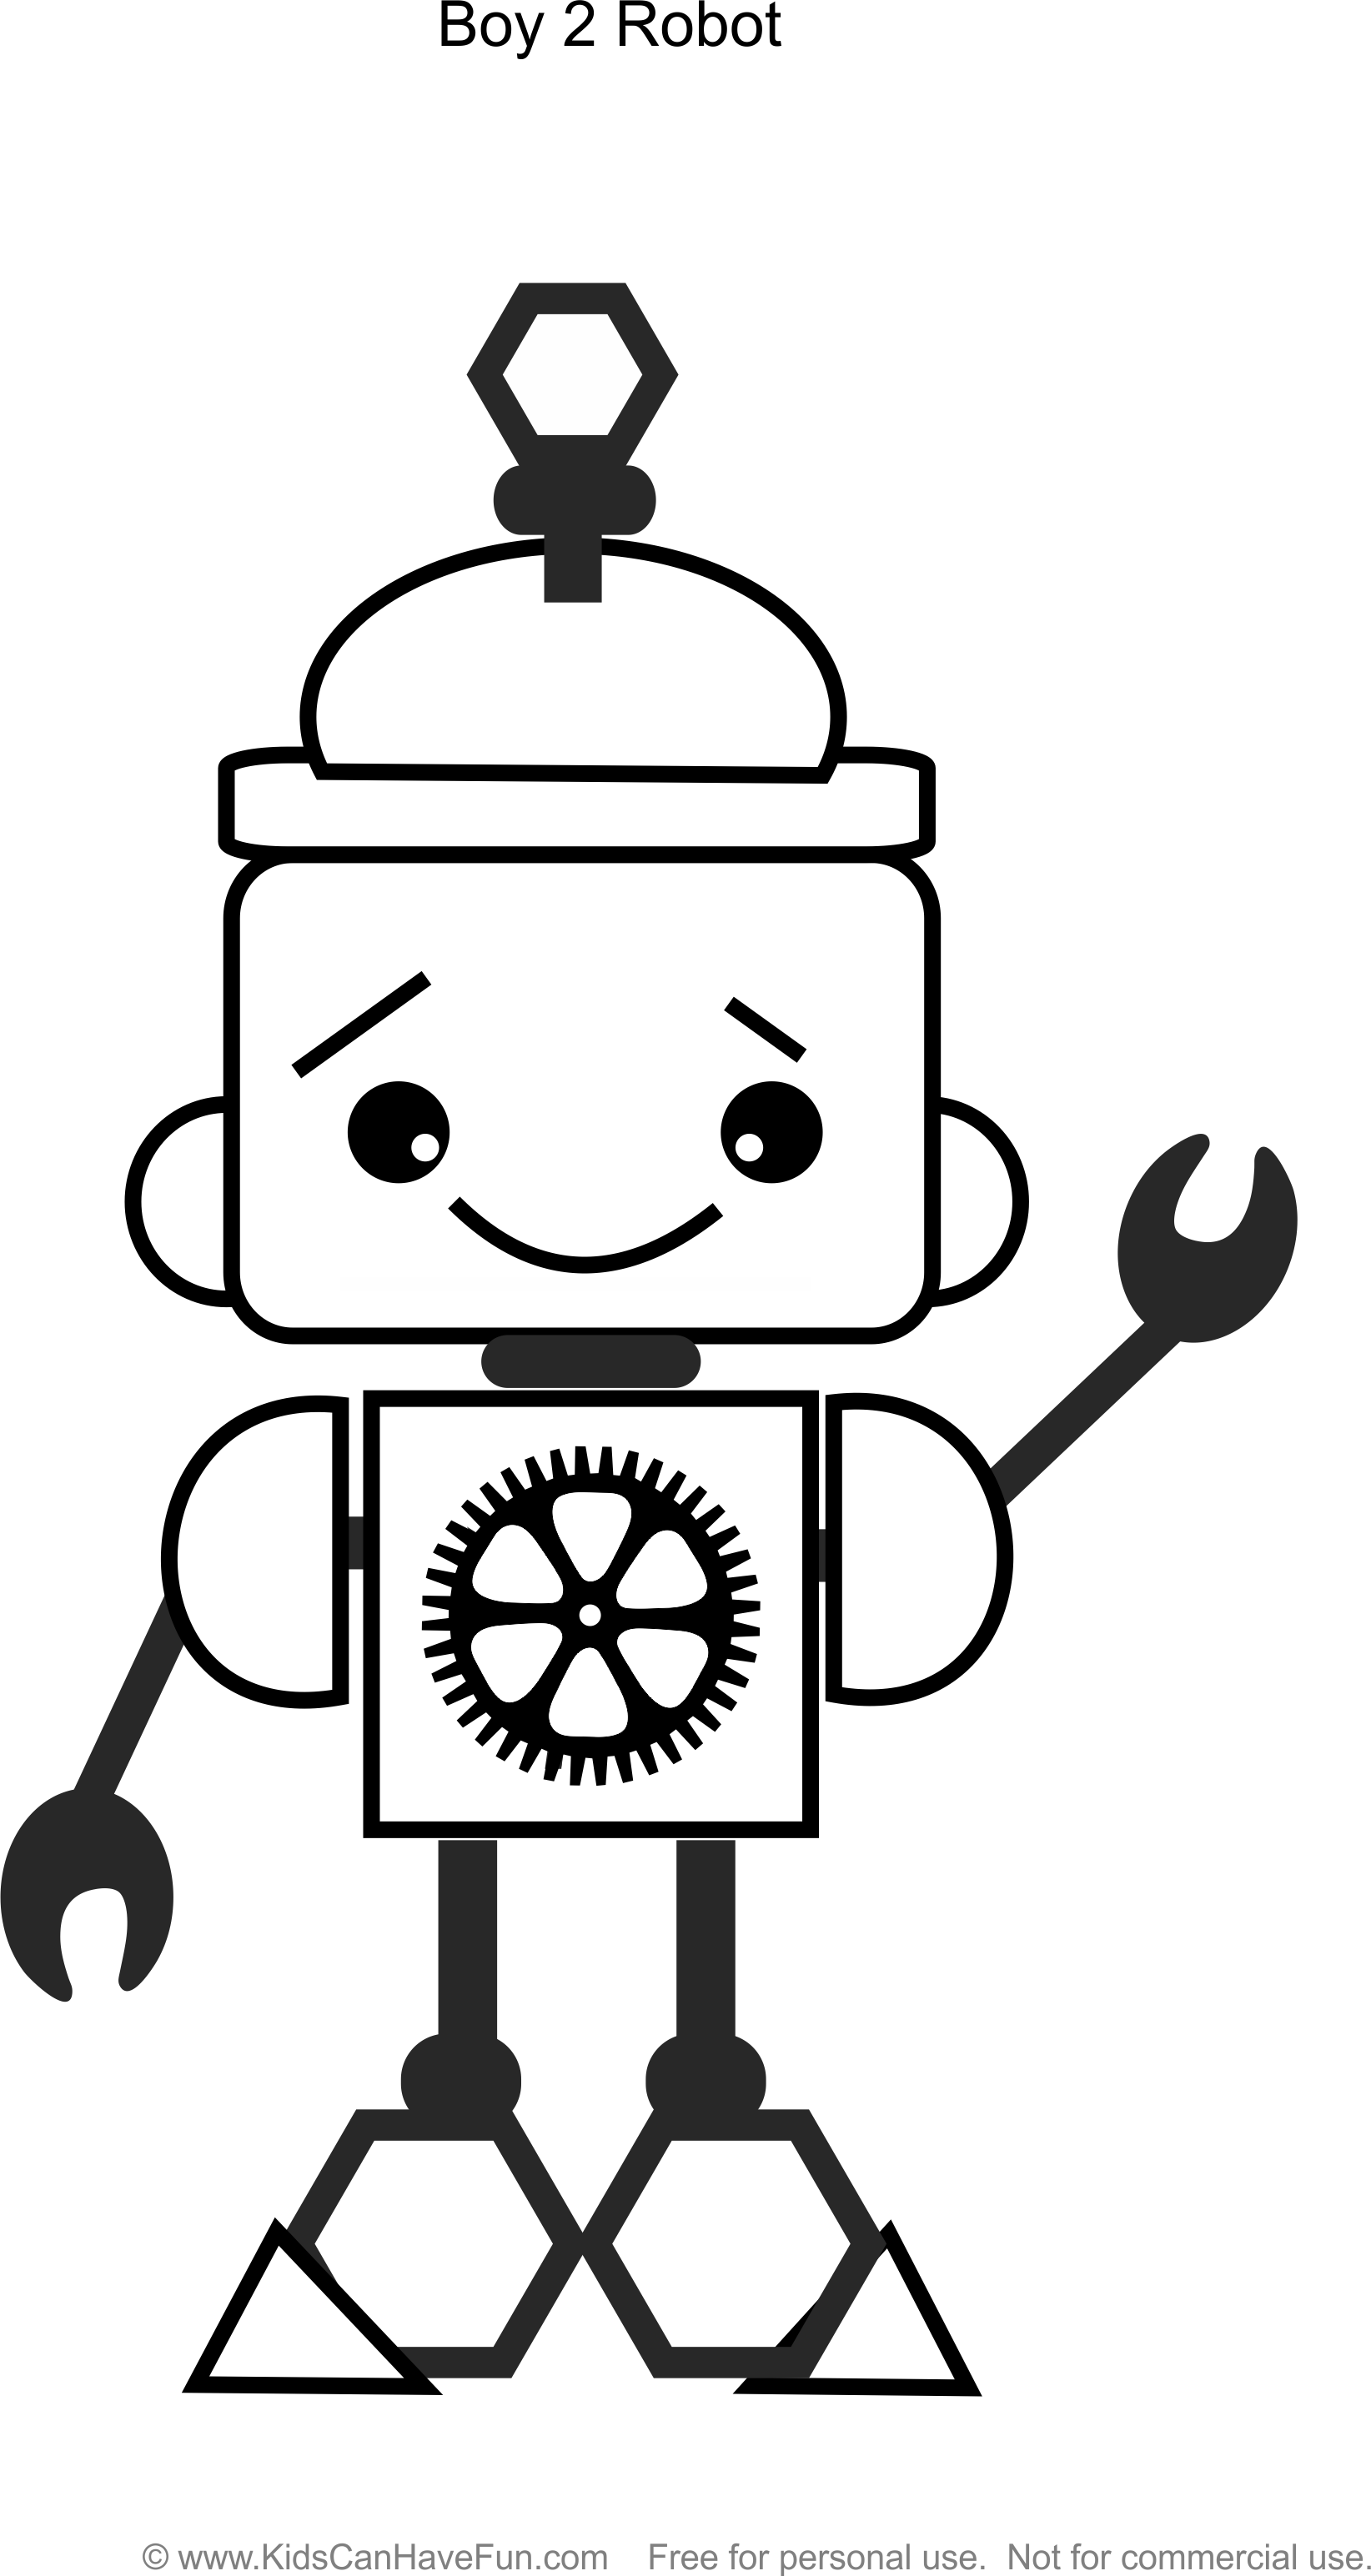 robot boy 2 coloring page httpwwwkidscanhavefuncomrobot coloringhtm robot coloringbook